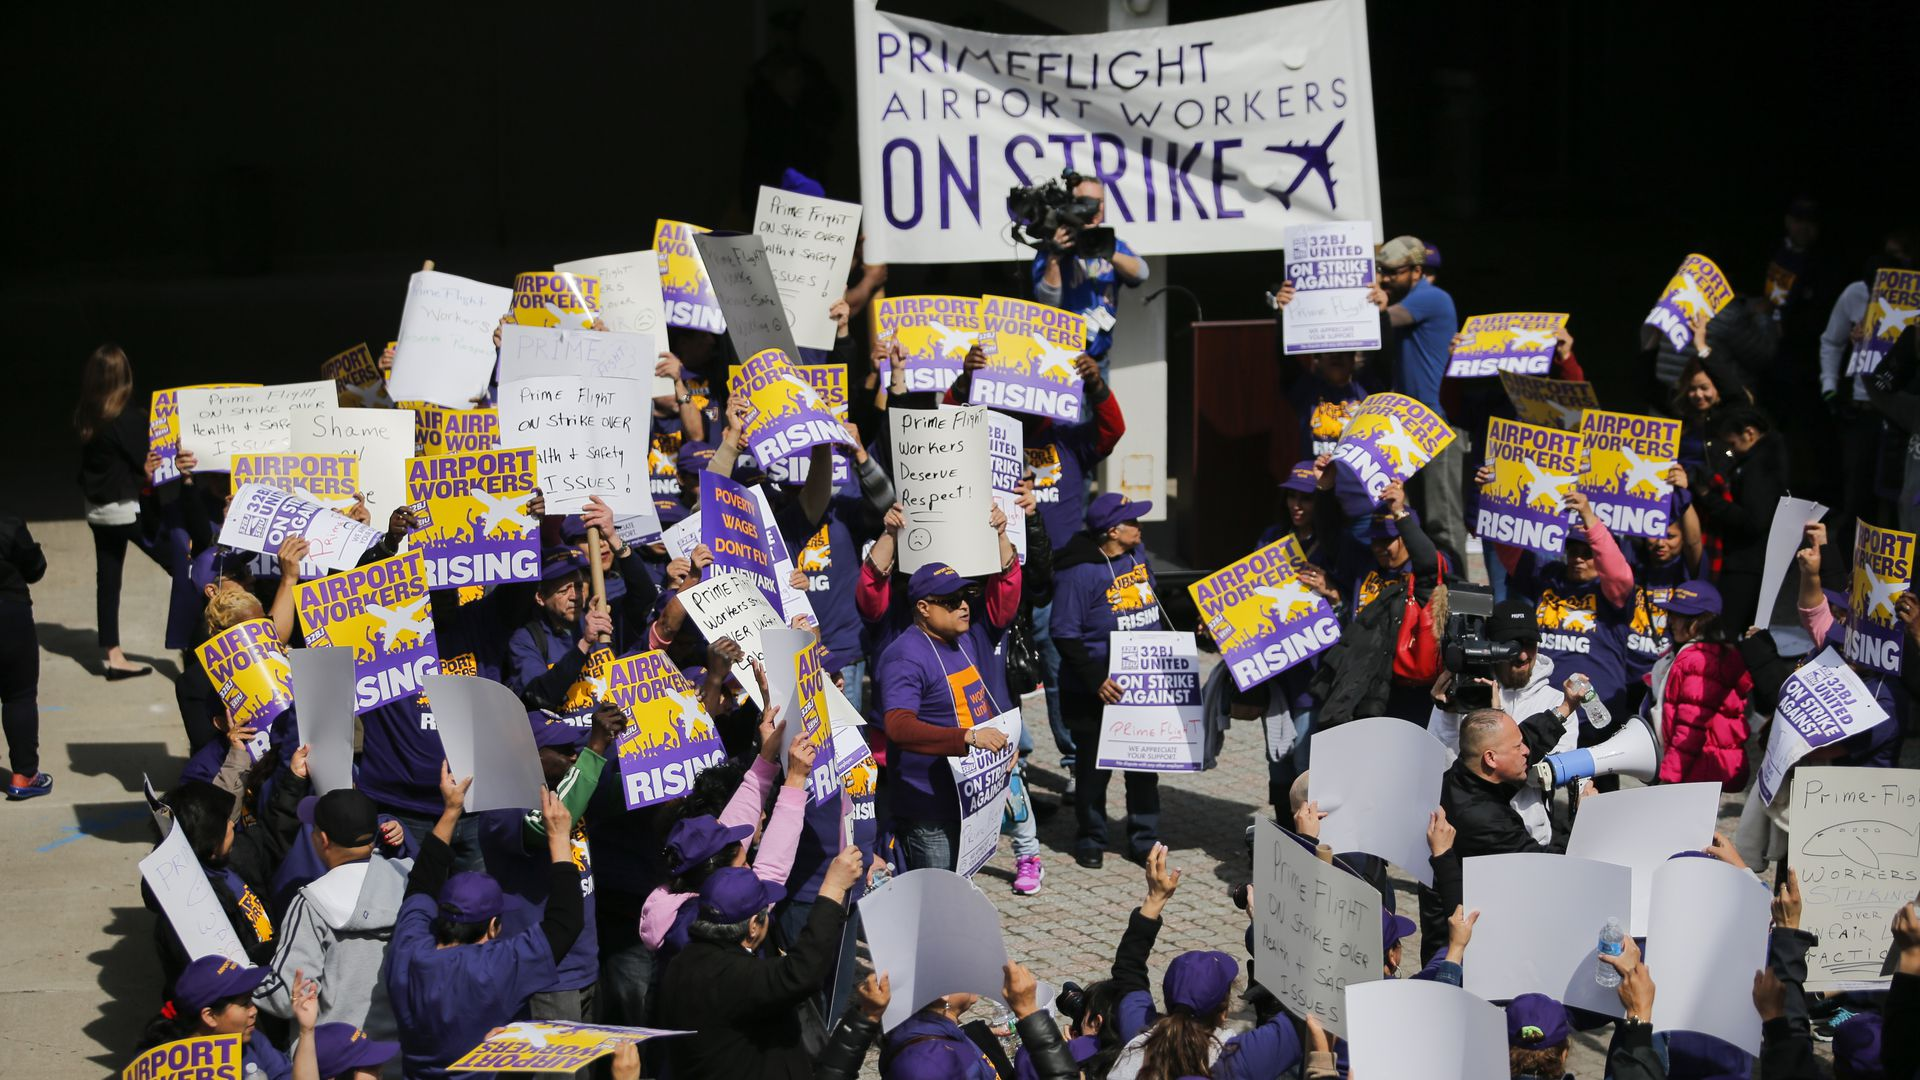 Airport workers take part in a strike at the Newark International Airport in March 2016. Photo by VIEW press/Corbis via Getty Images